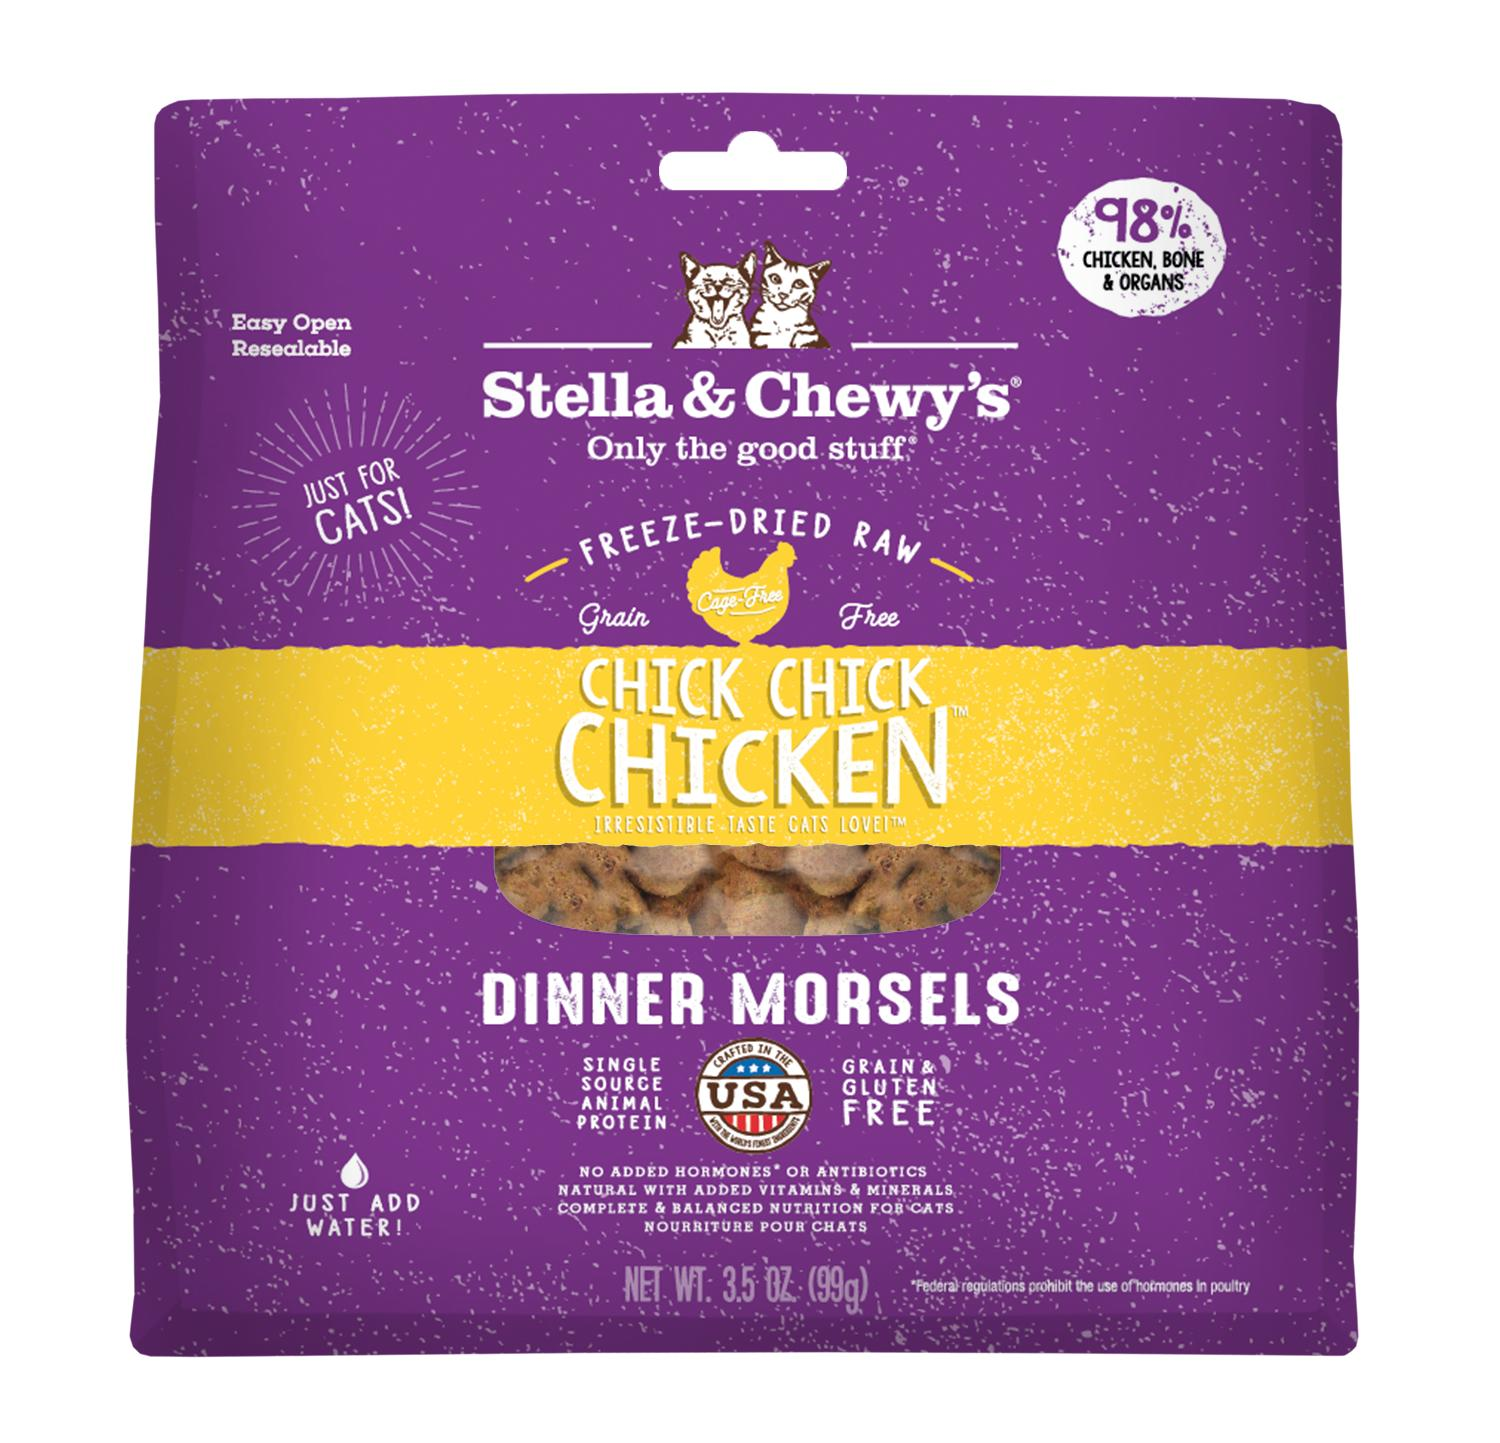 Stella & Chewy's Chick Chick Chicken Dinner Freeze-Dried Cat Food Image